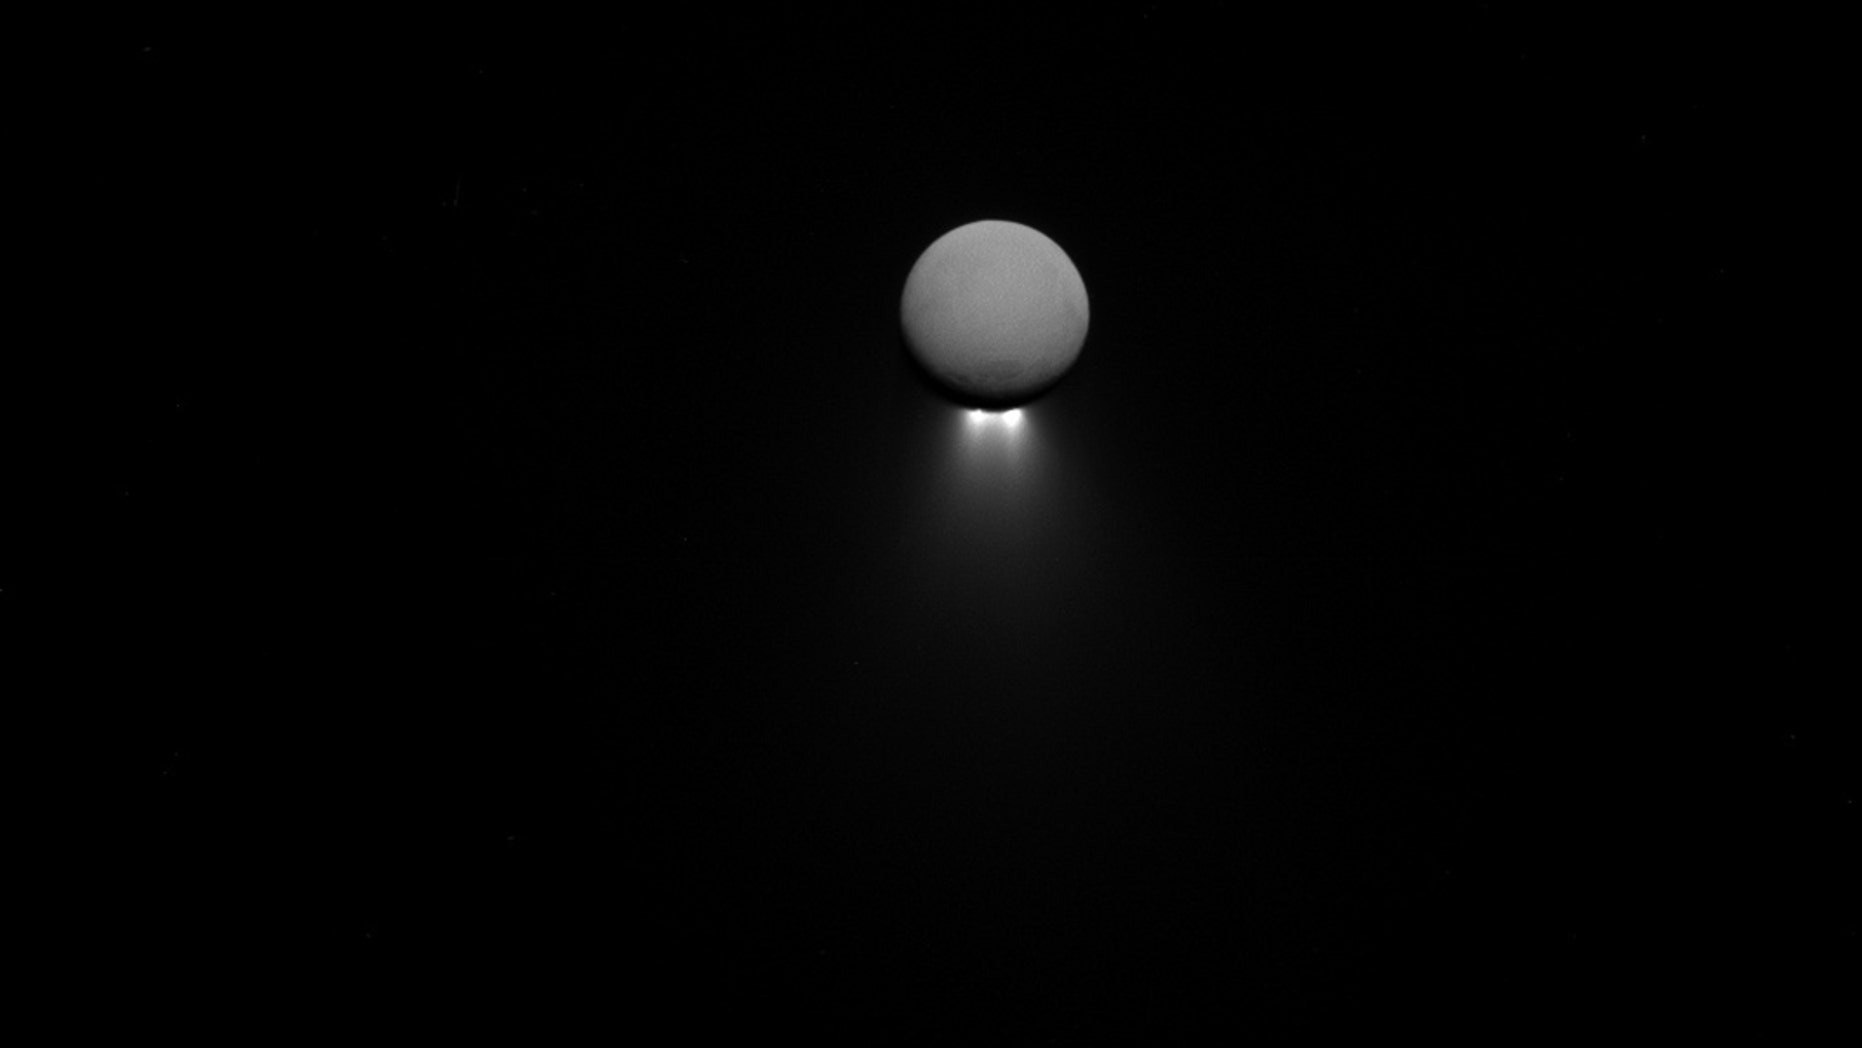 Saturn's moon Enceladus releases jets of water ice as imaged by the Cassini spacecraft in April. The moon shines in reflected Saturn light, while the jets are backlit by the sun.